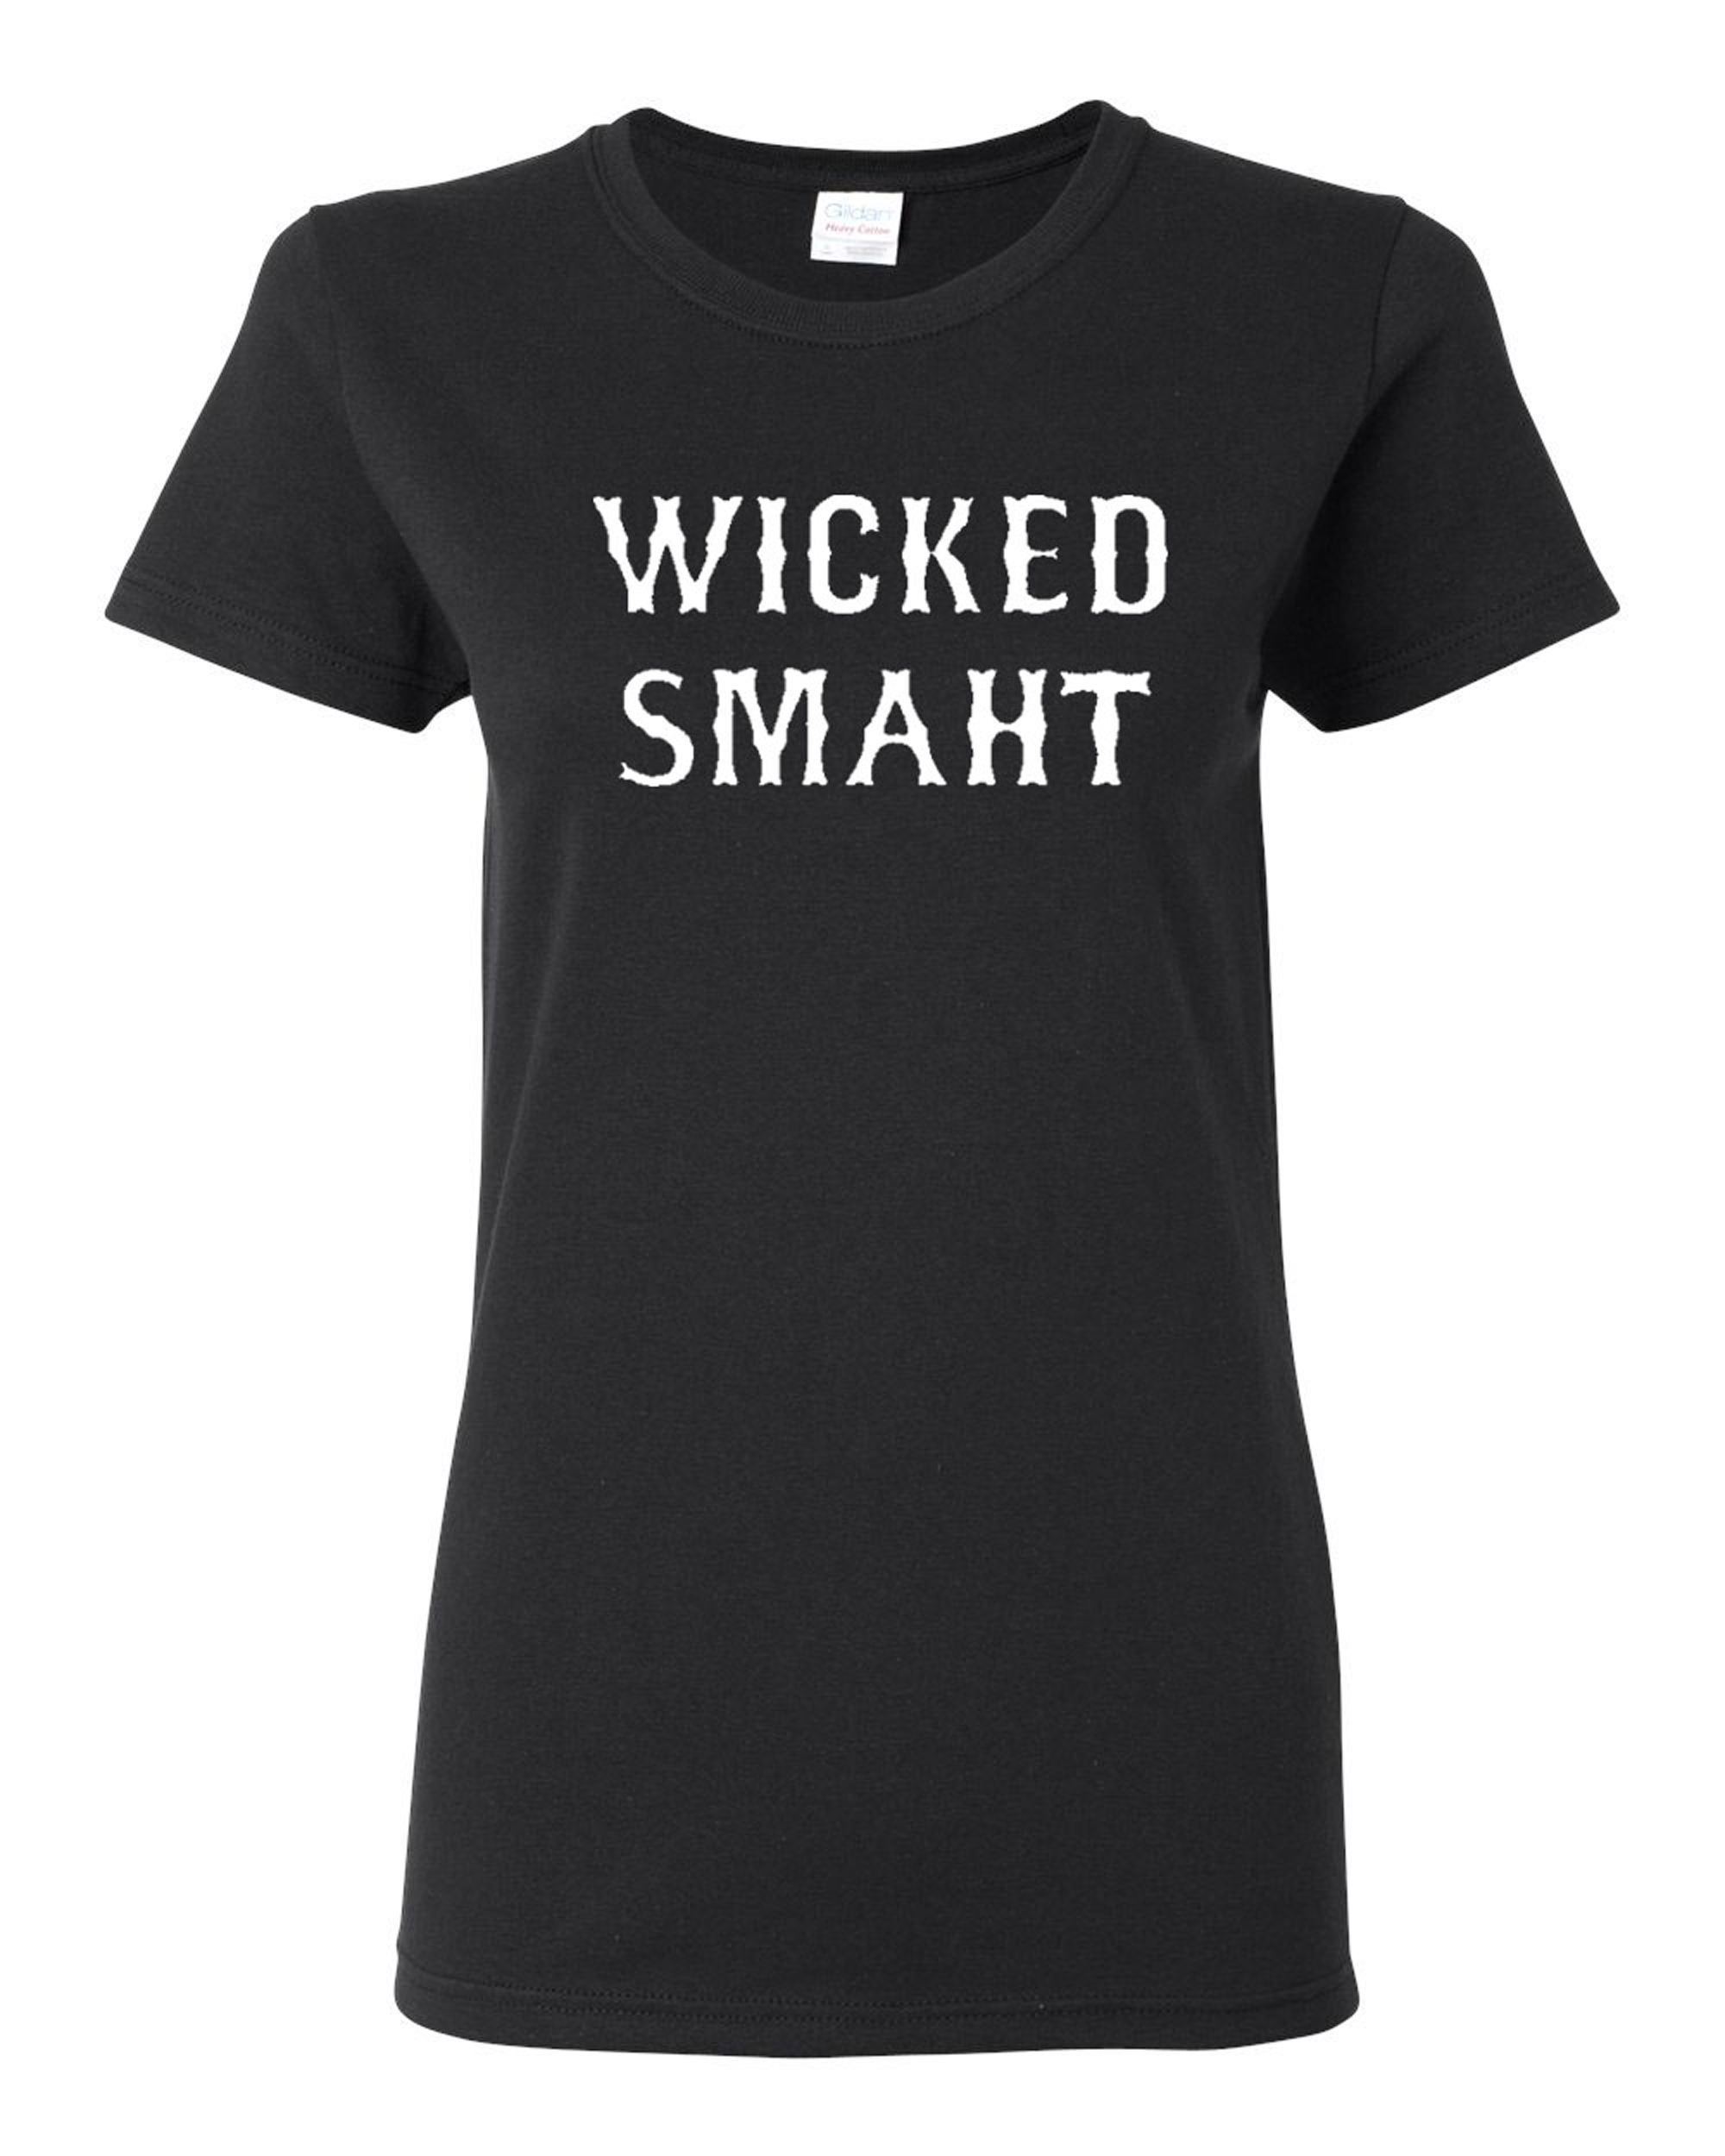 Ladies Wicked Smaht Funny T-Shirt Tee